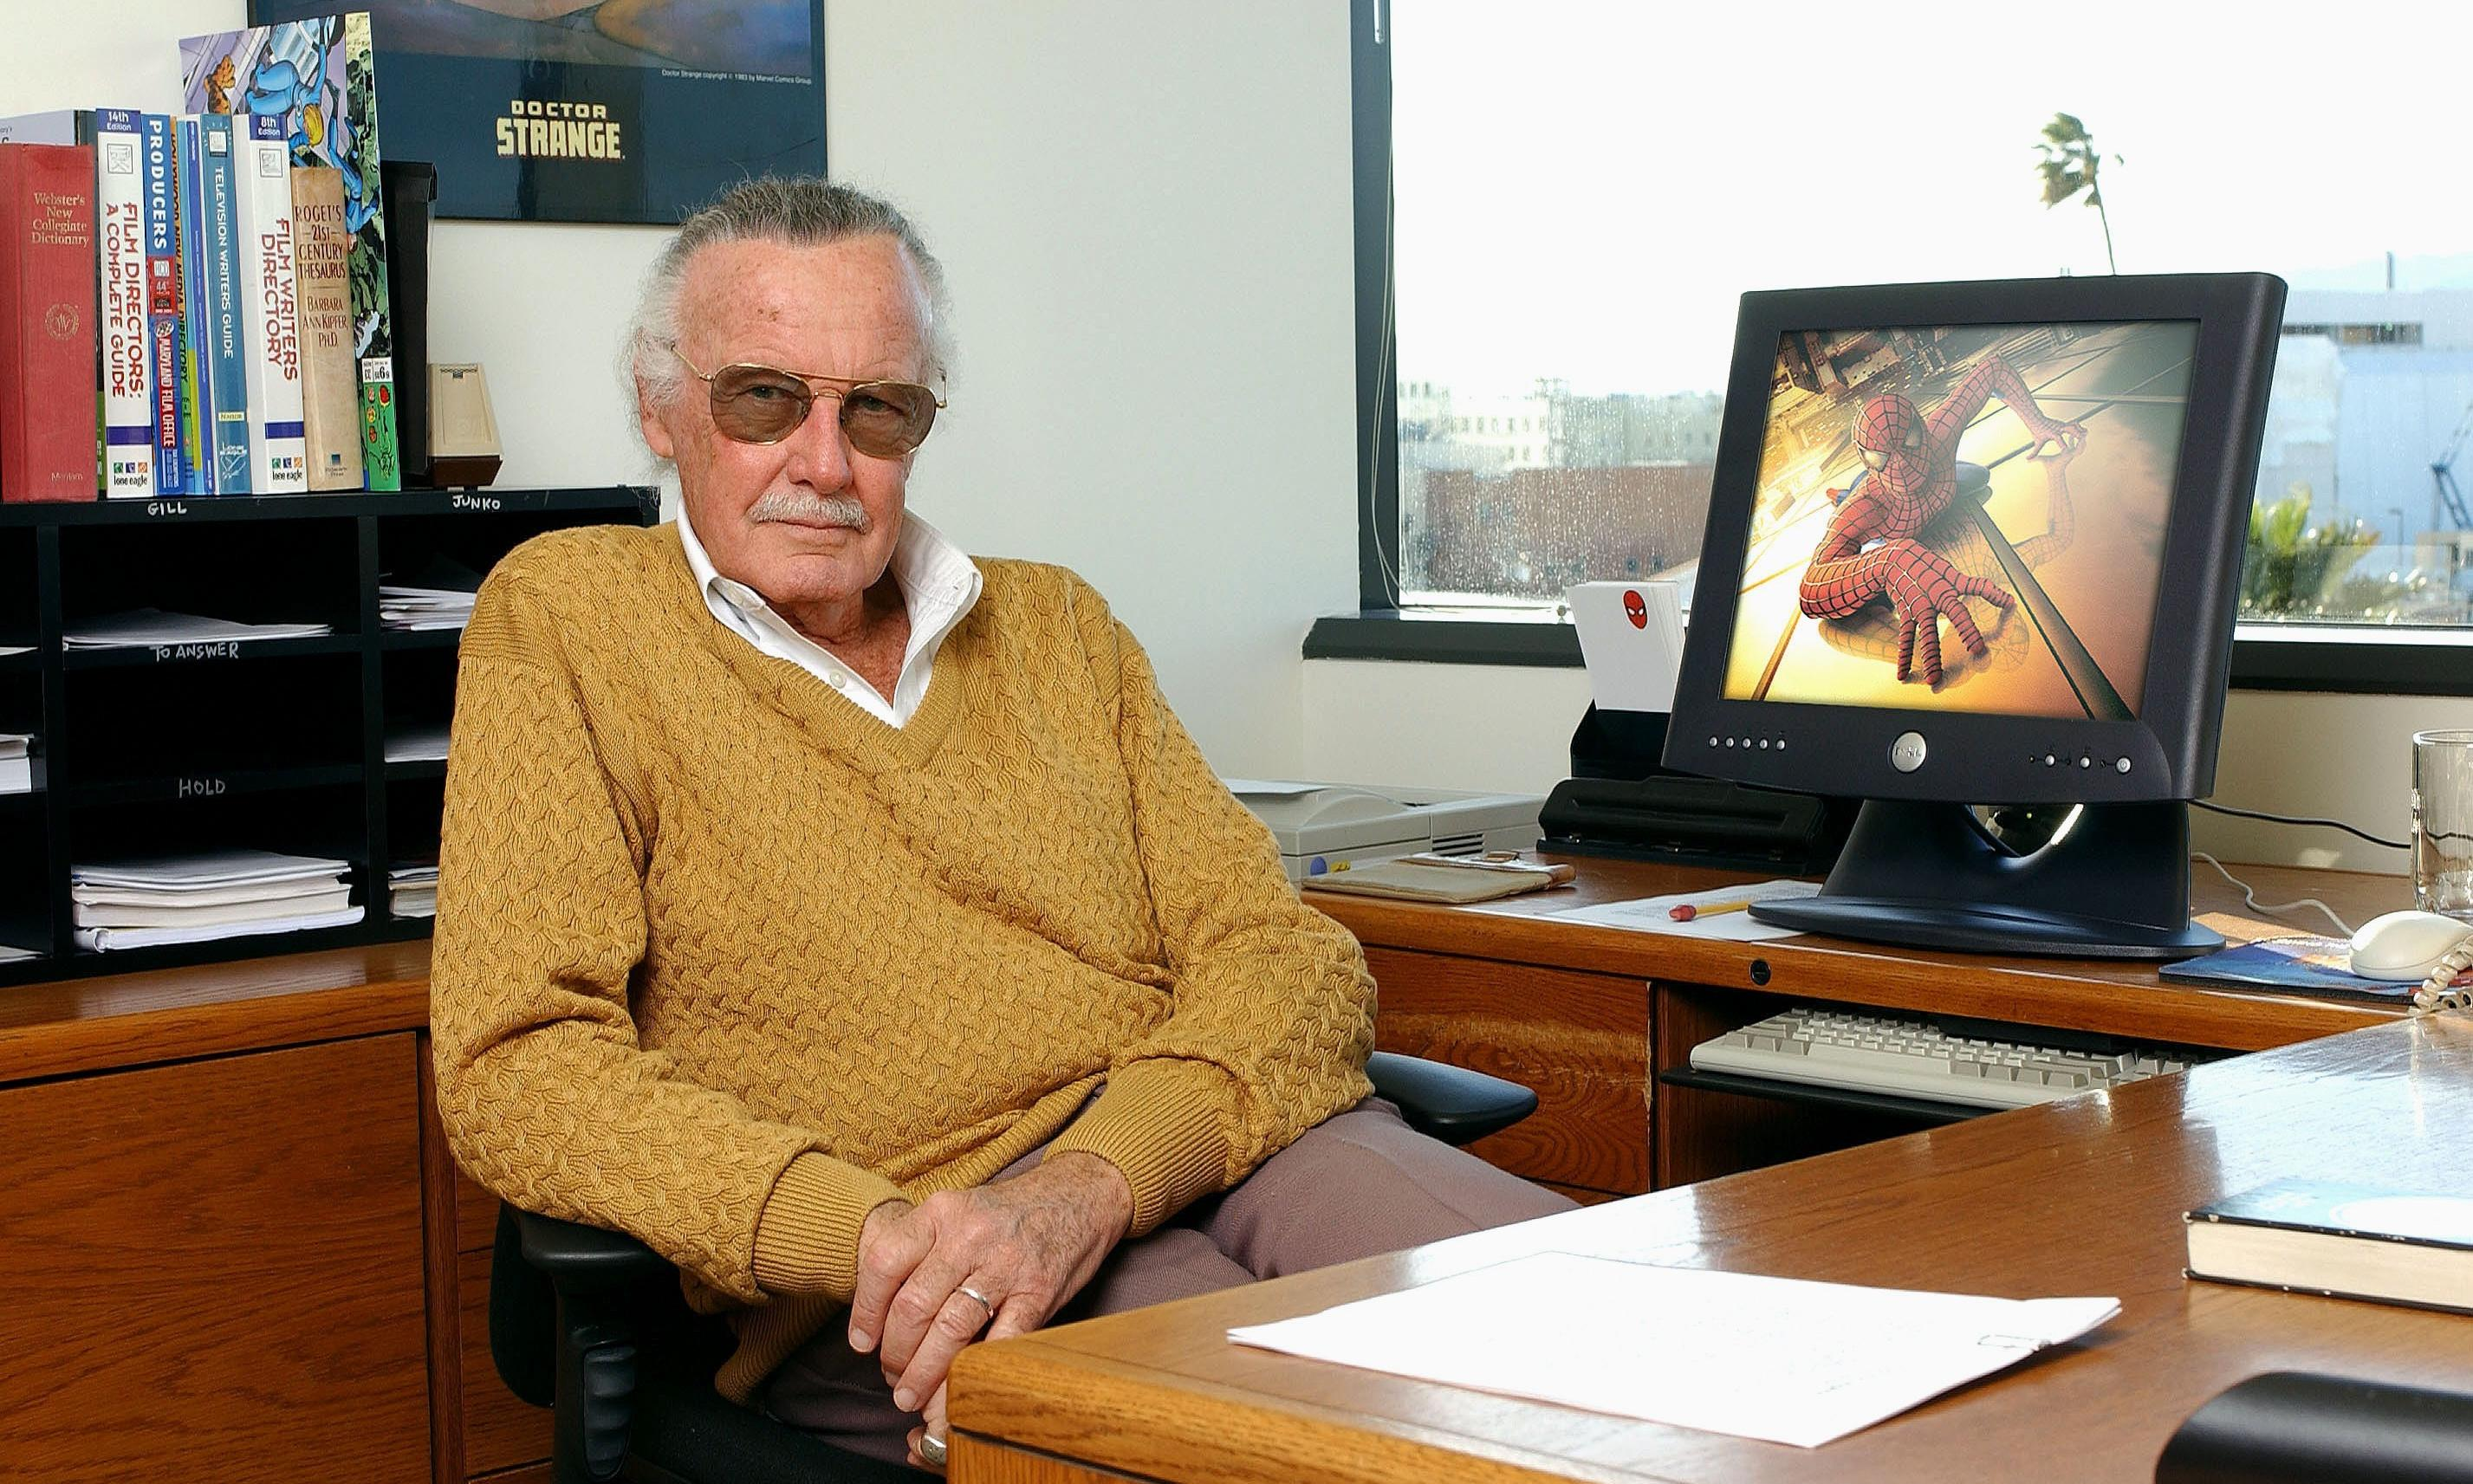 Stan Lee's 'first novel for adults' to be published this autumn